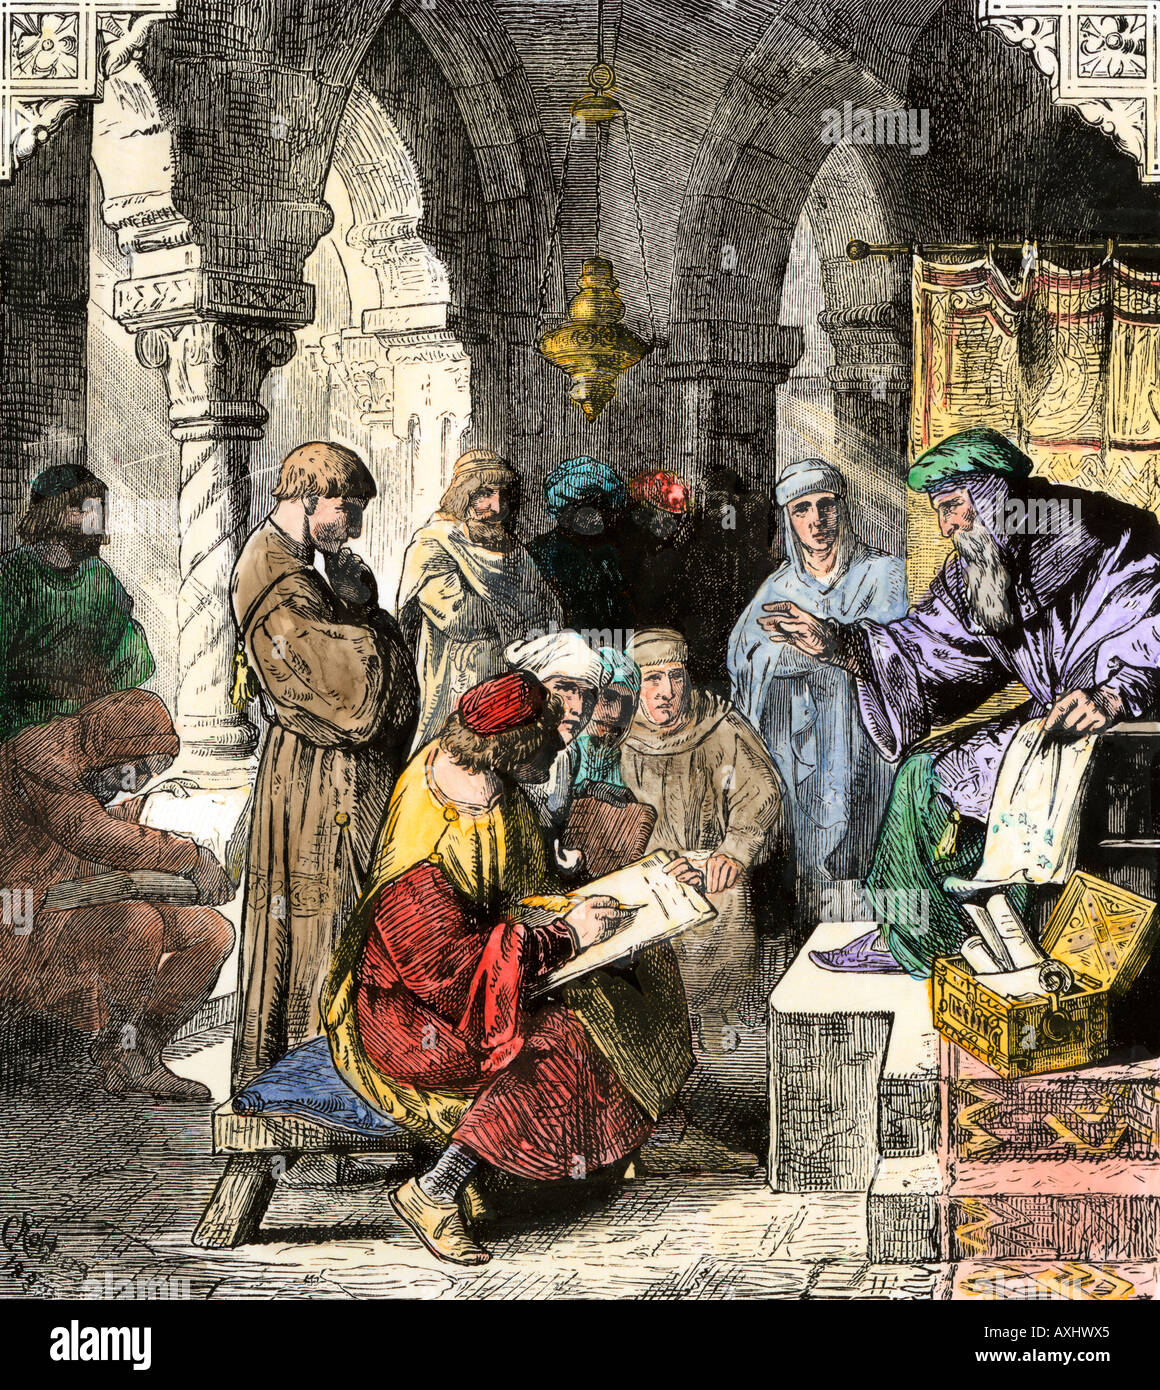 Alchemy and astrology plus math and science taught by Arab scholars in medieval schools. Hand-colored woodcut - Stock Image